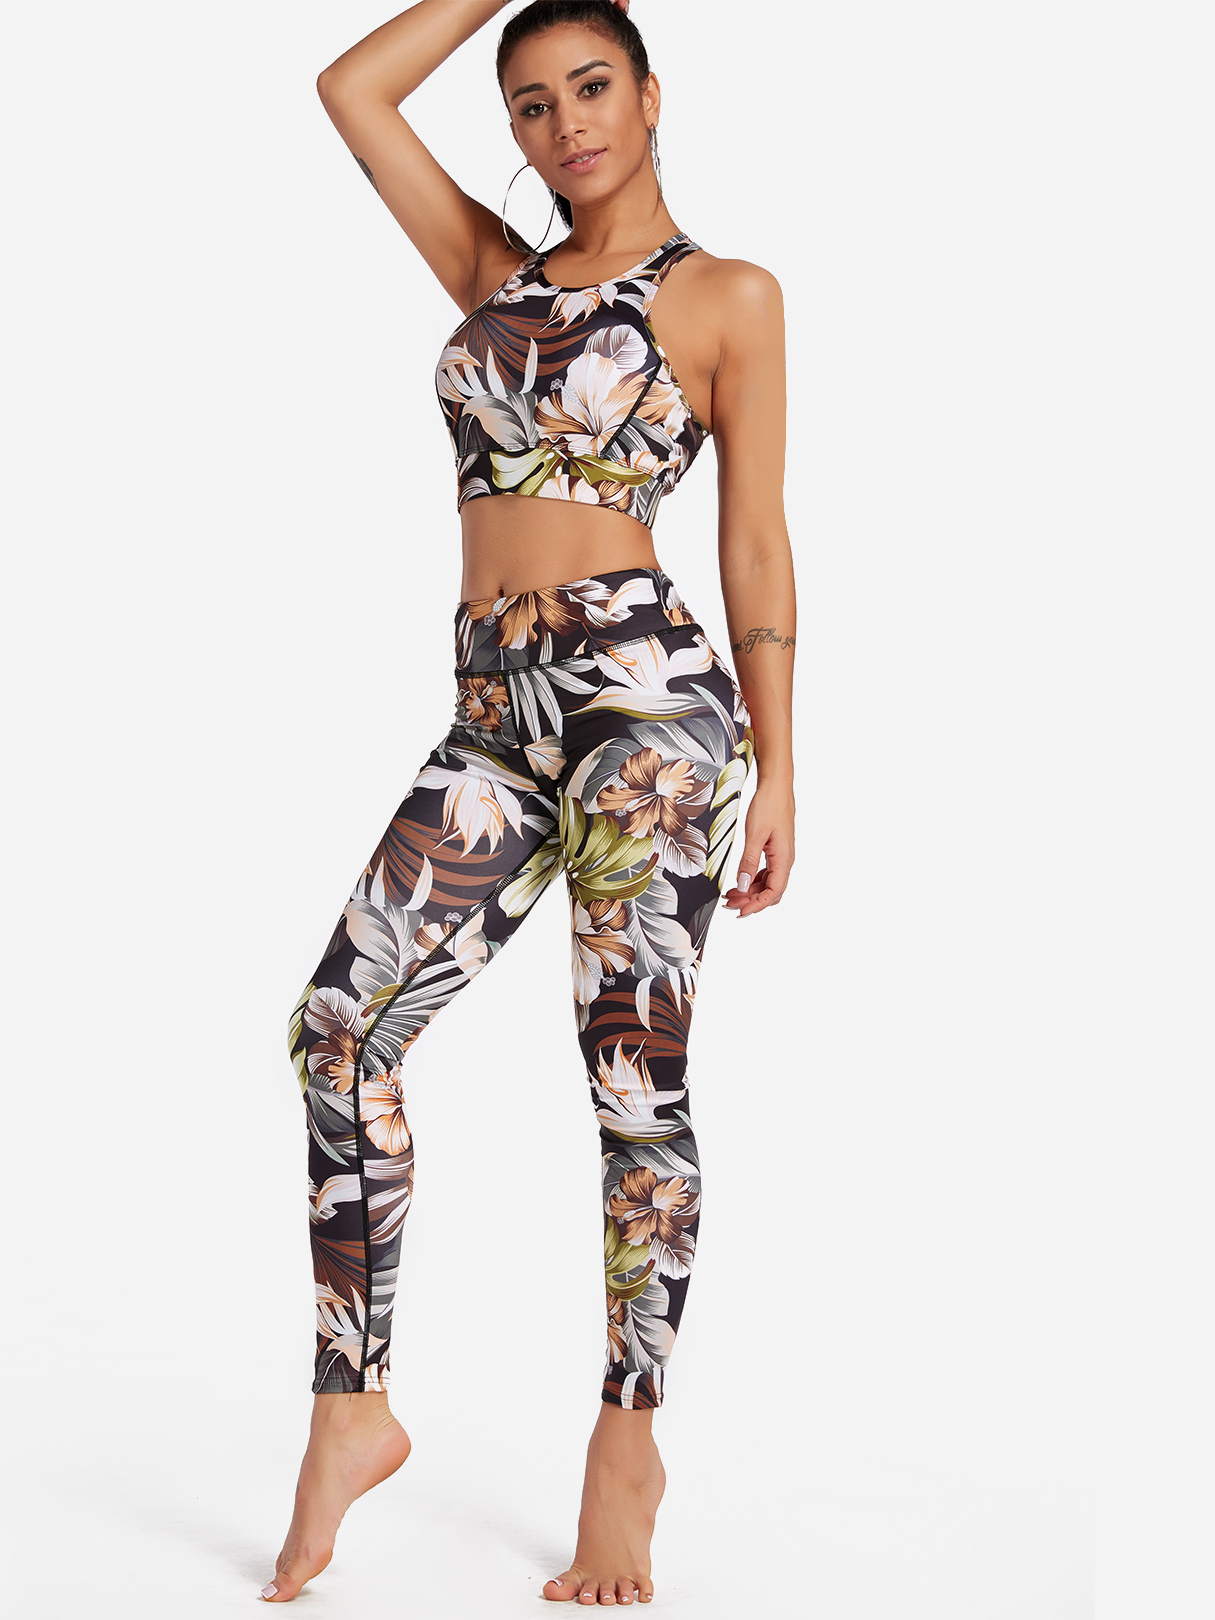 Brown Floral Print Crew Neck Sleeveless High-waisted Tracksuit balck and blue sleeveless yoga tracksuit